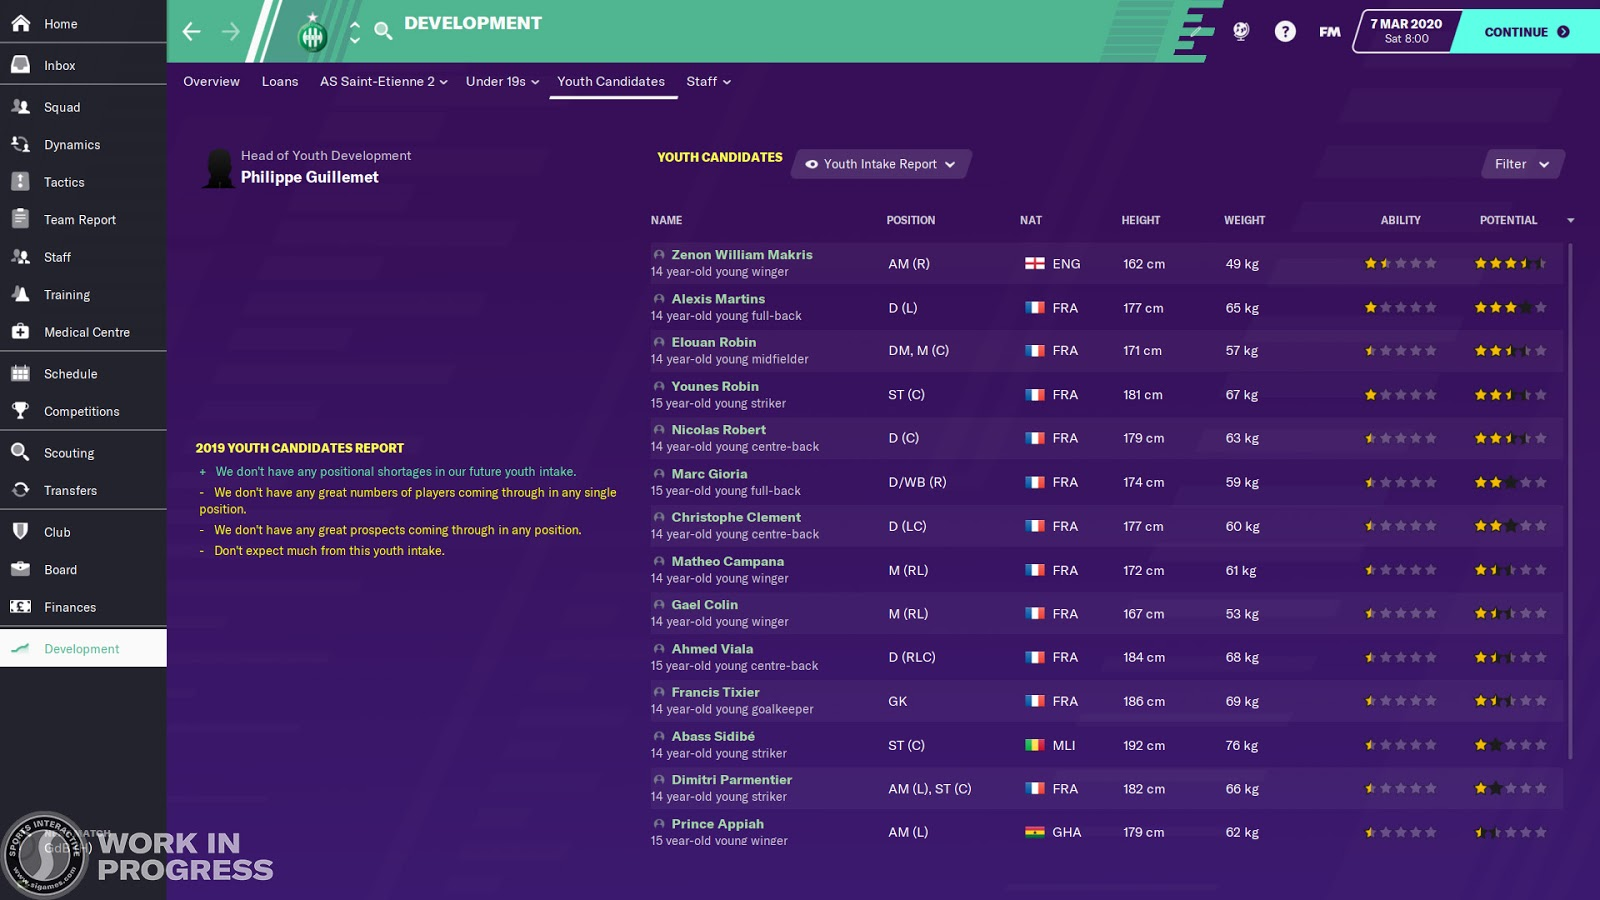 The youth candidates screen in Football Manager 2020